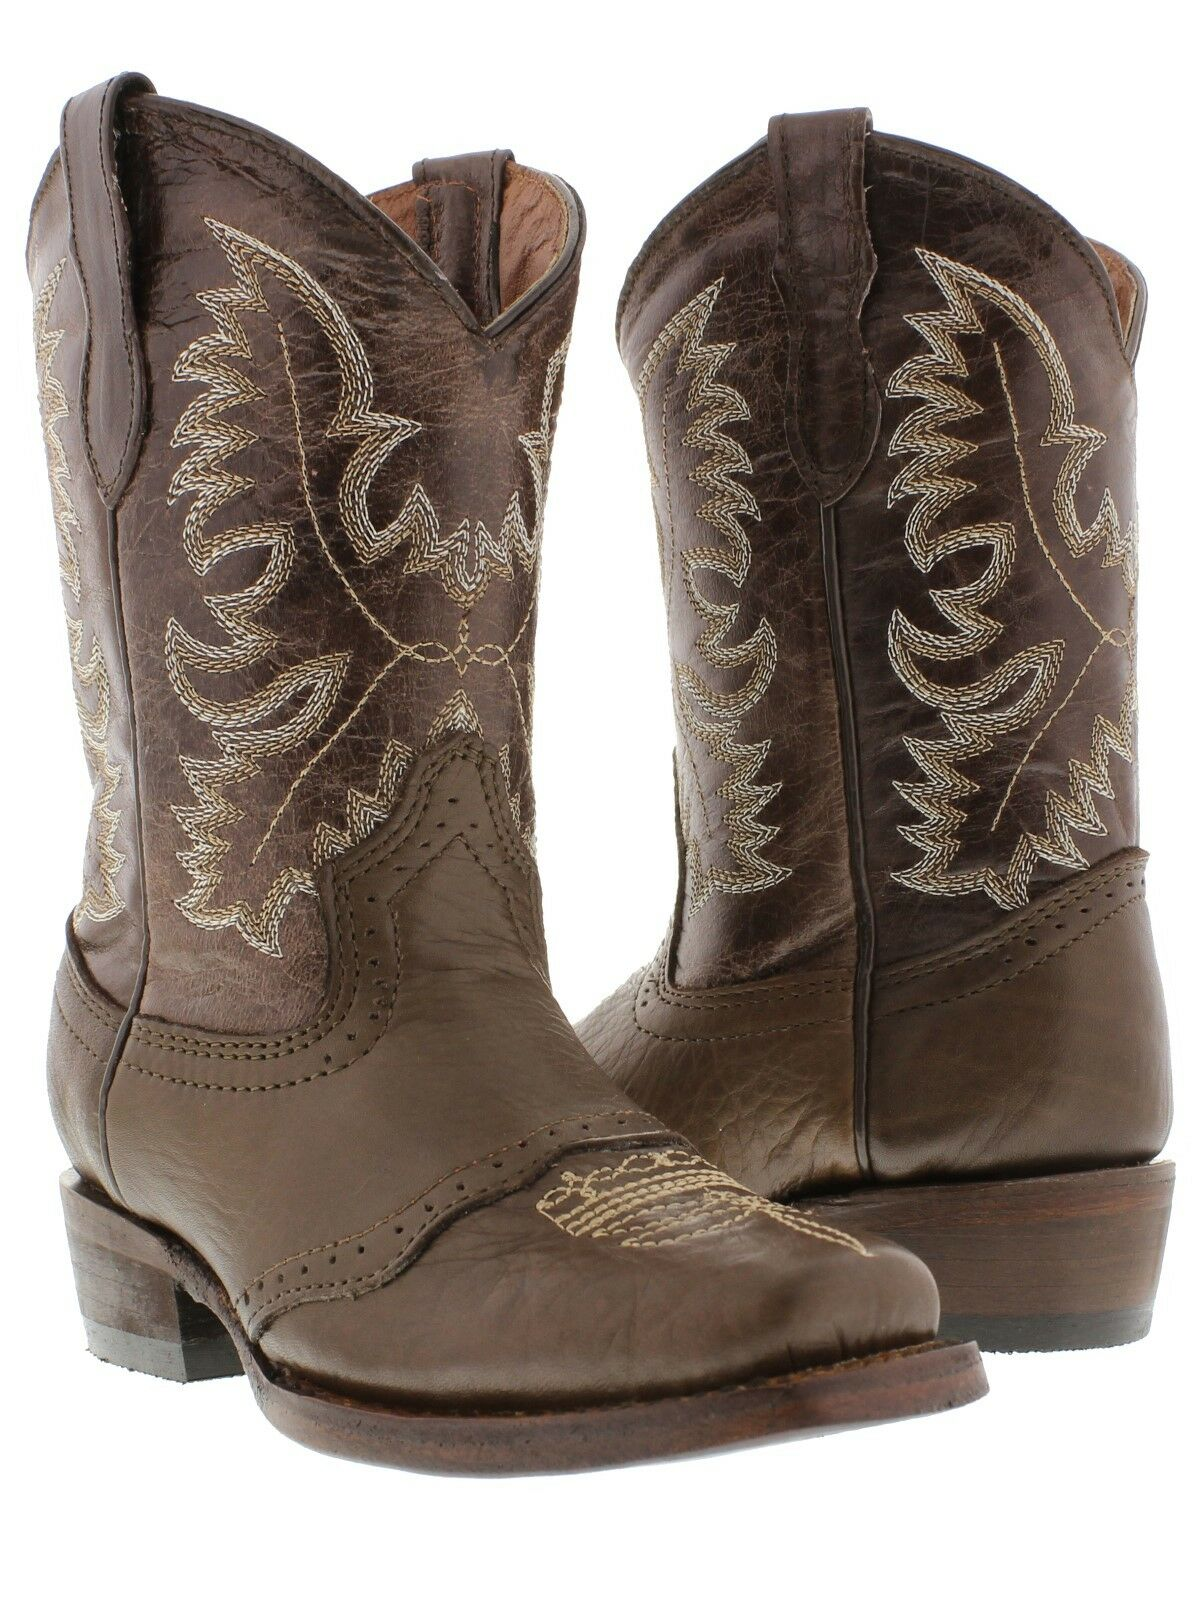 Veretta Childrens Brown Saddle Cowboy Boots Youth Boys Western Rodeo Square Toe